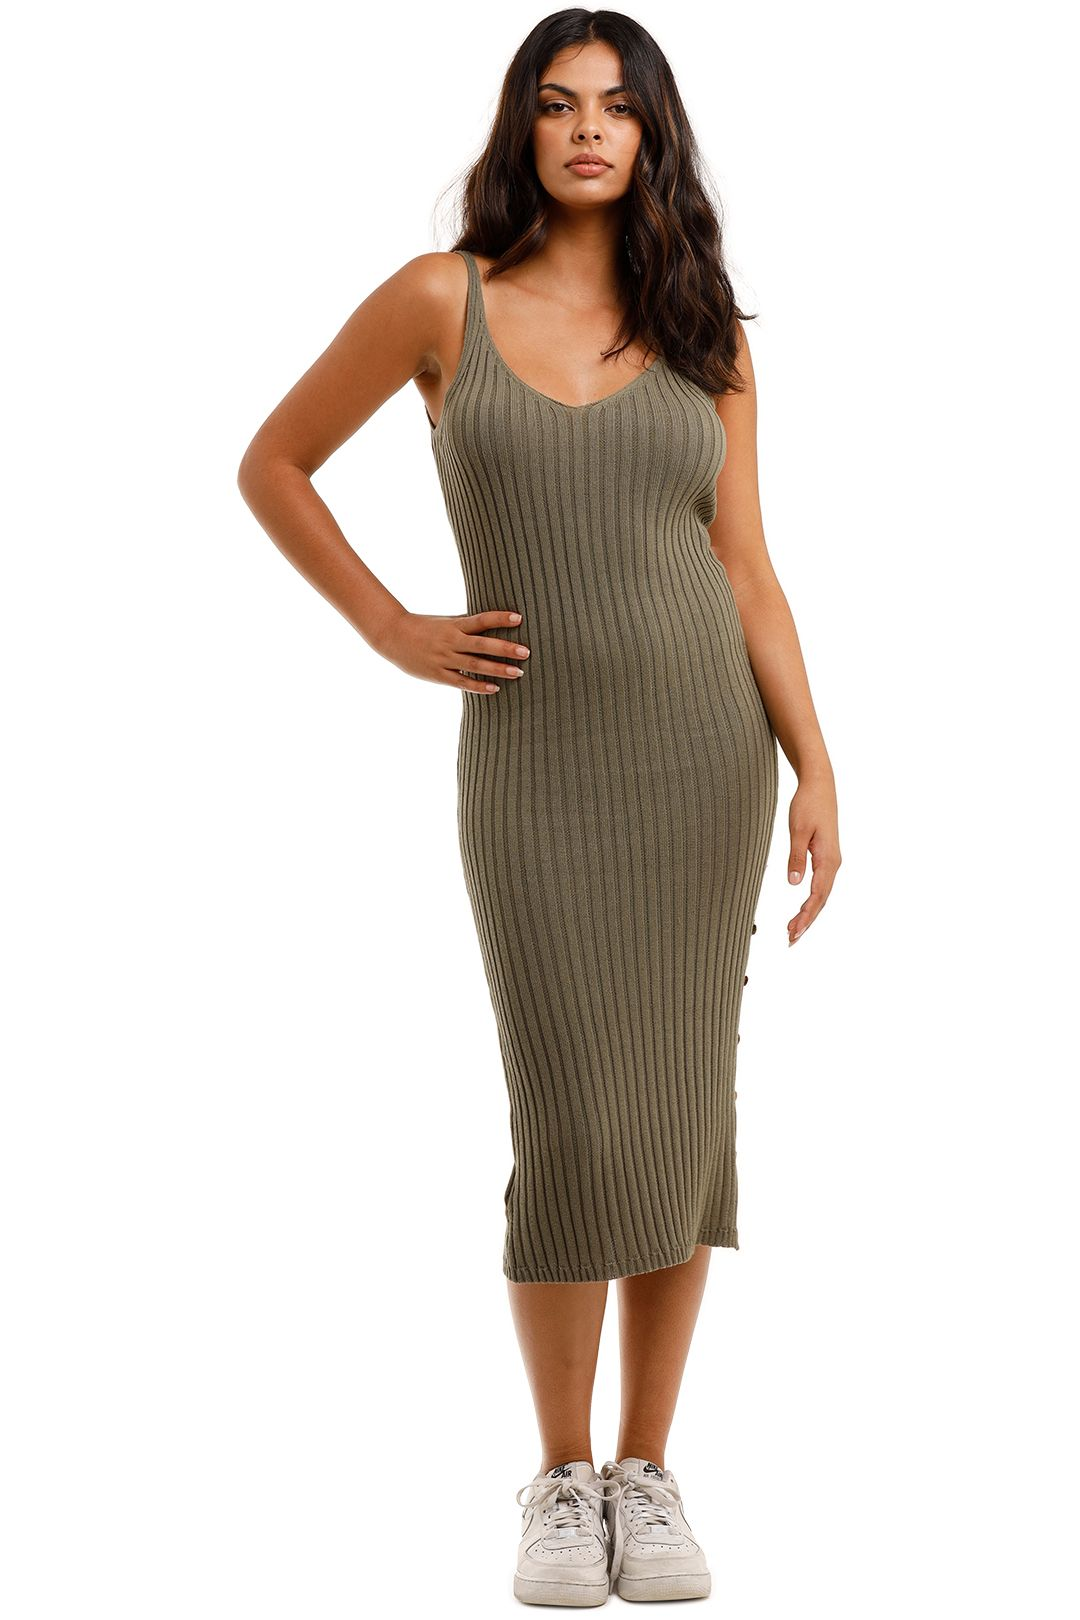 Staple The Label Cresent Knit Midi Dress V-Neckline